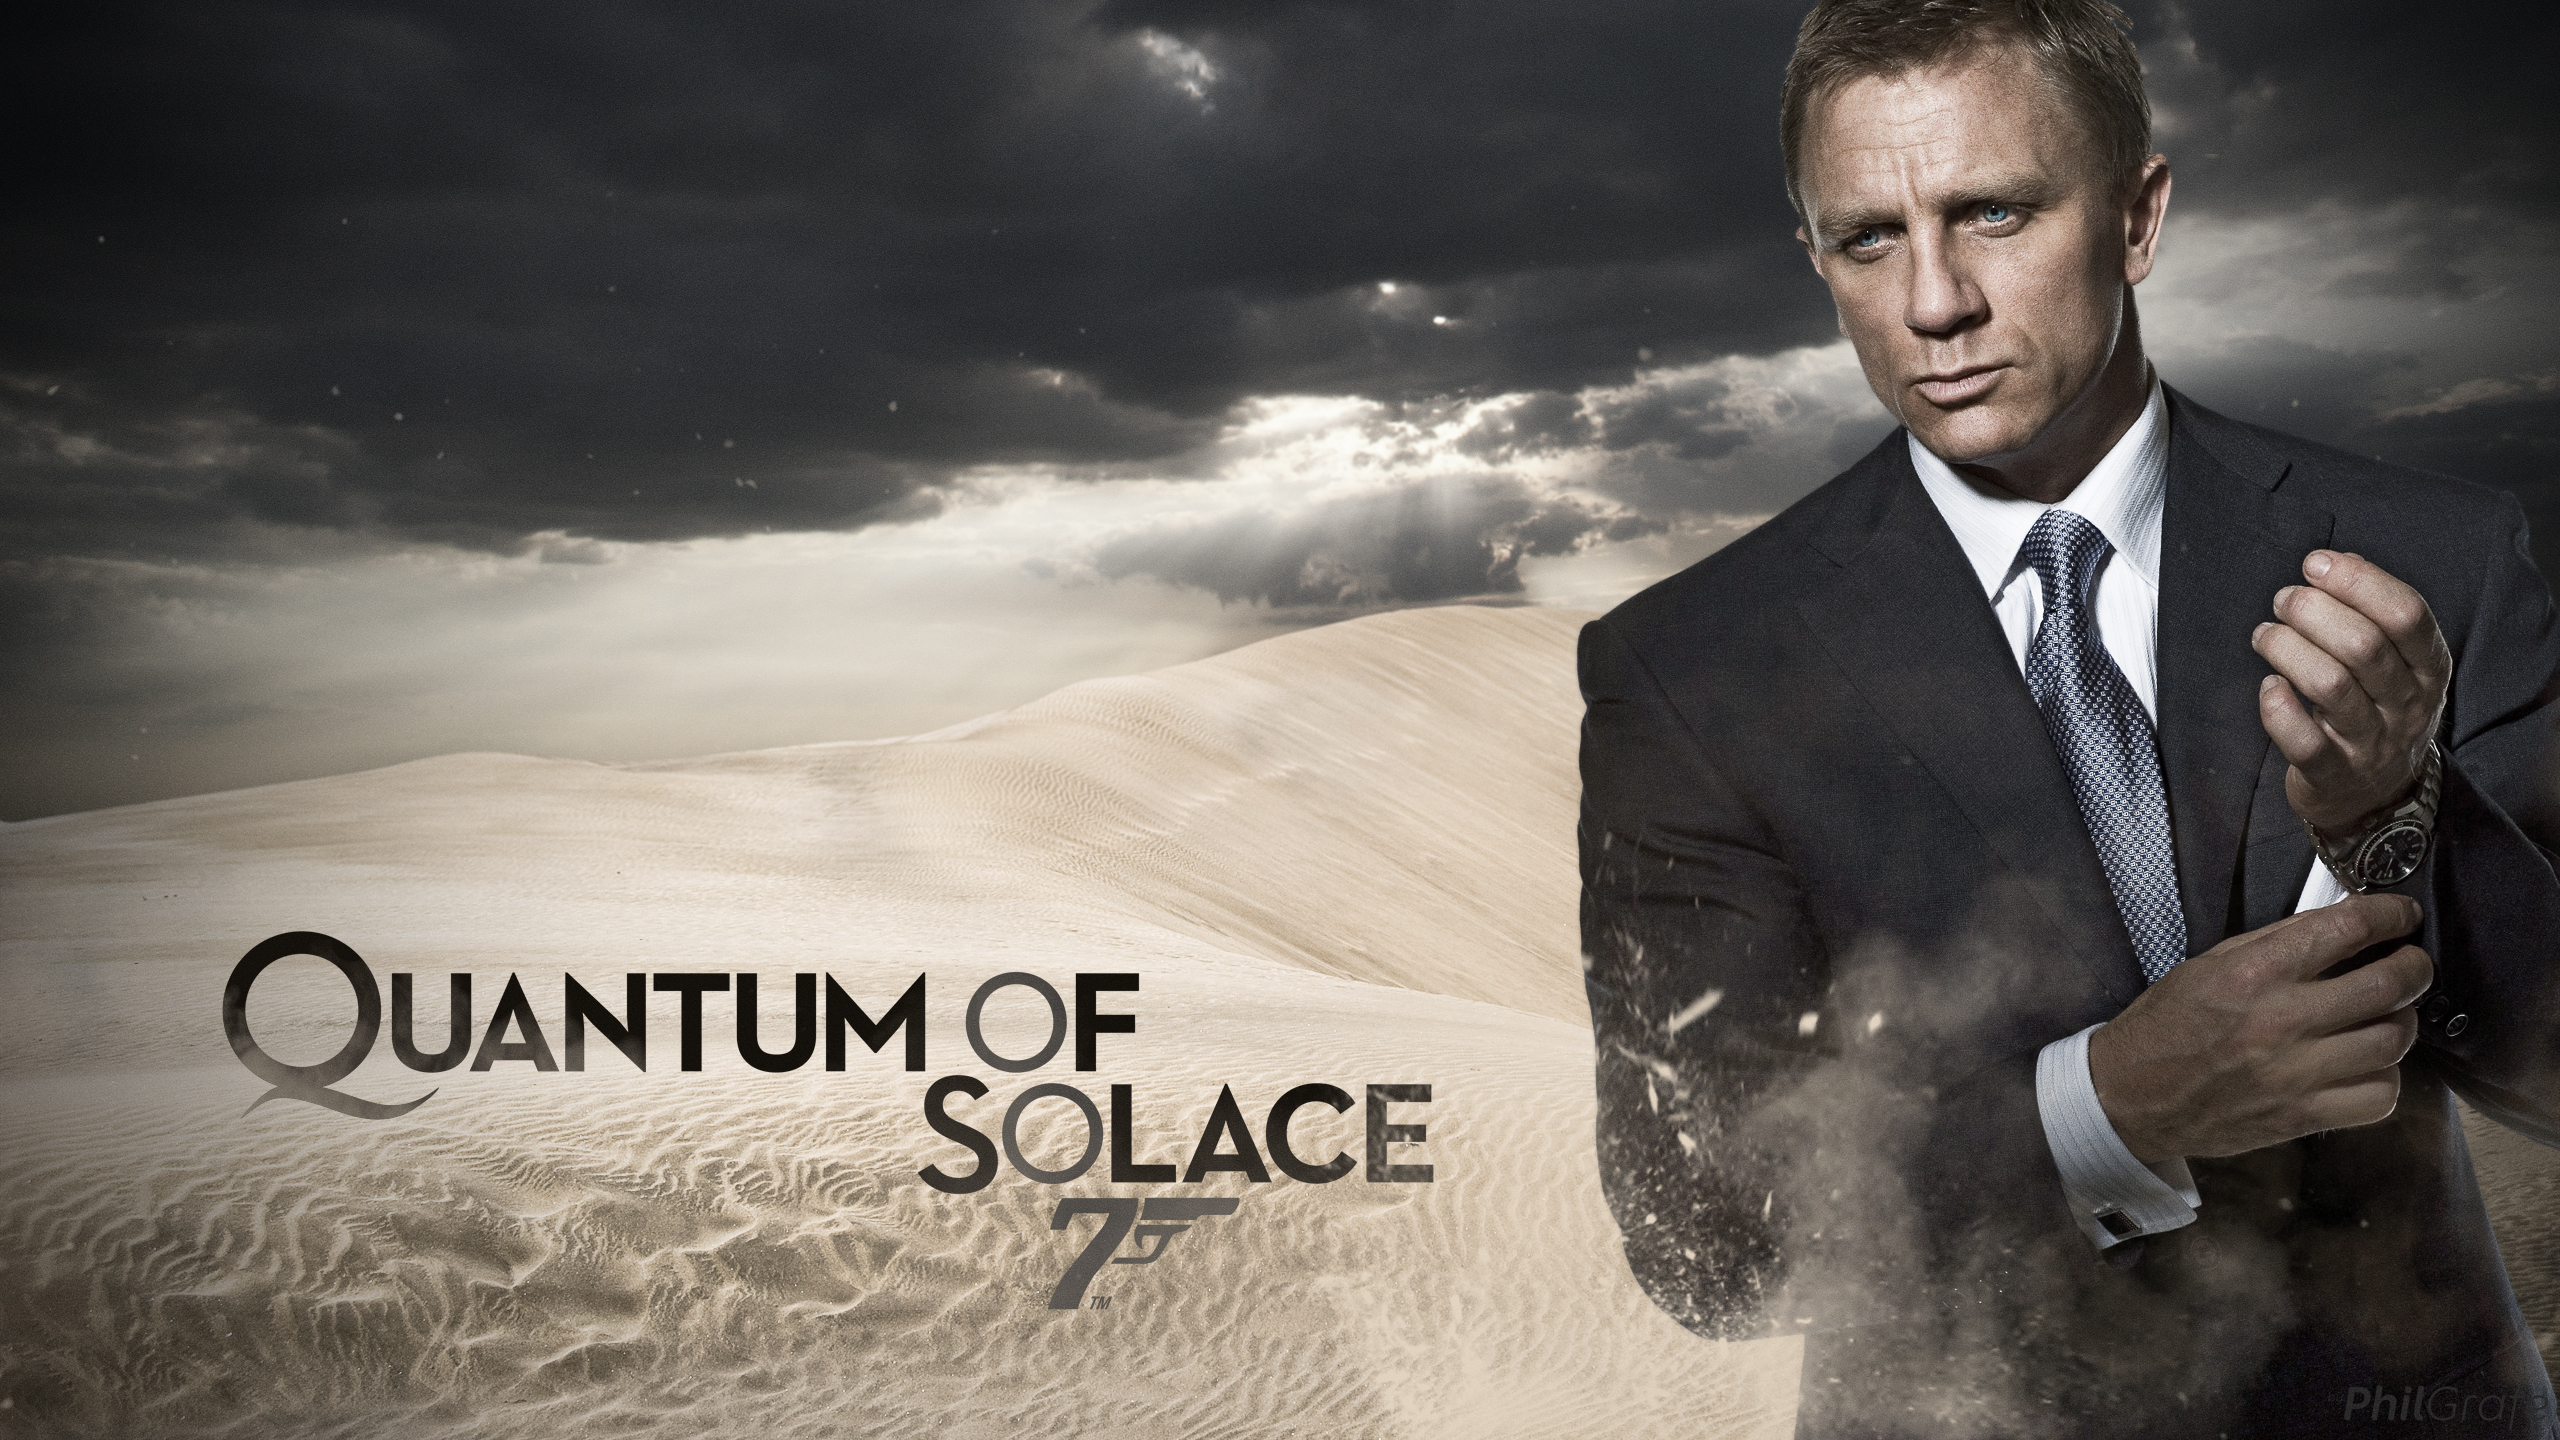 007 December – Quantum of Solace (2008) – What About the Twinkie ...